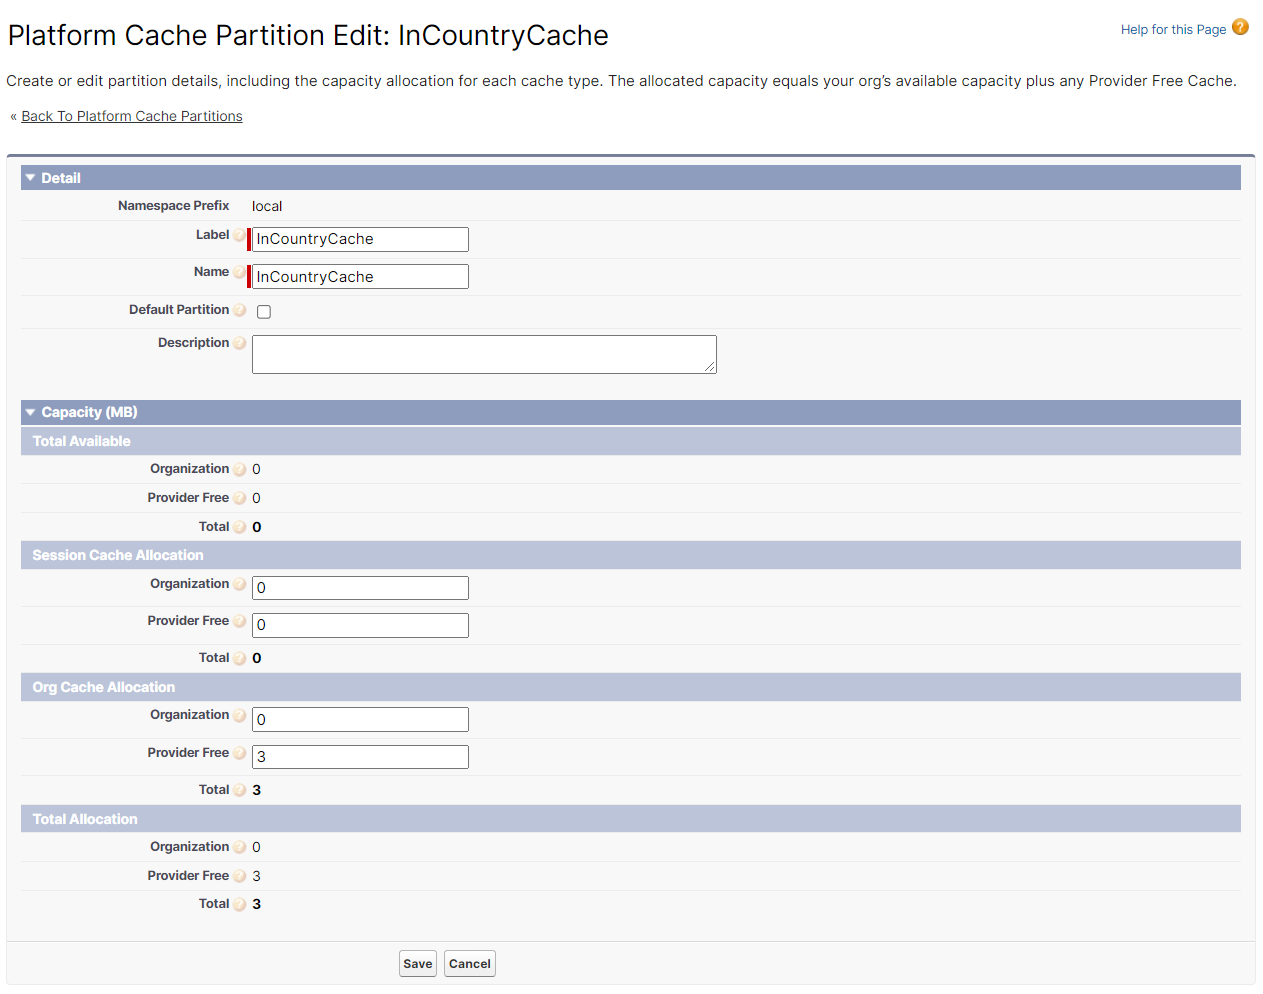 InCountry Cache size defined